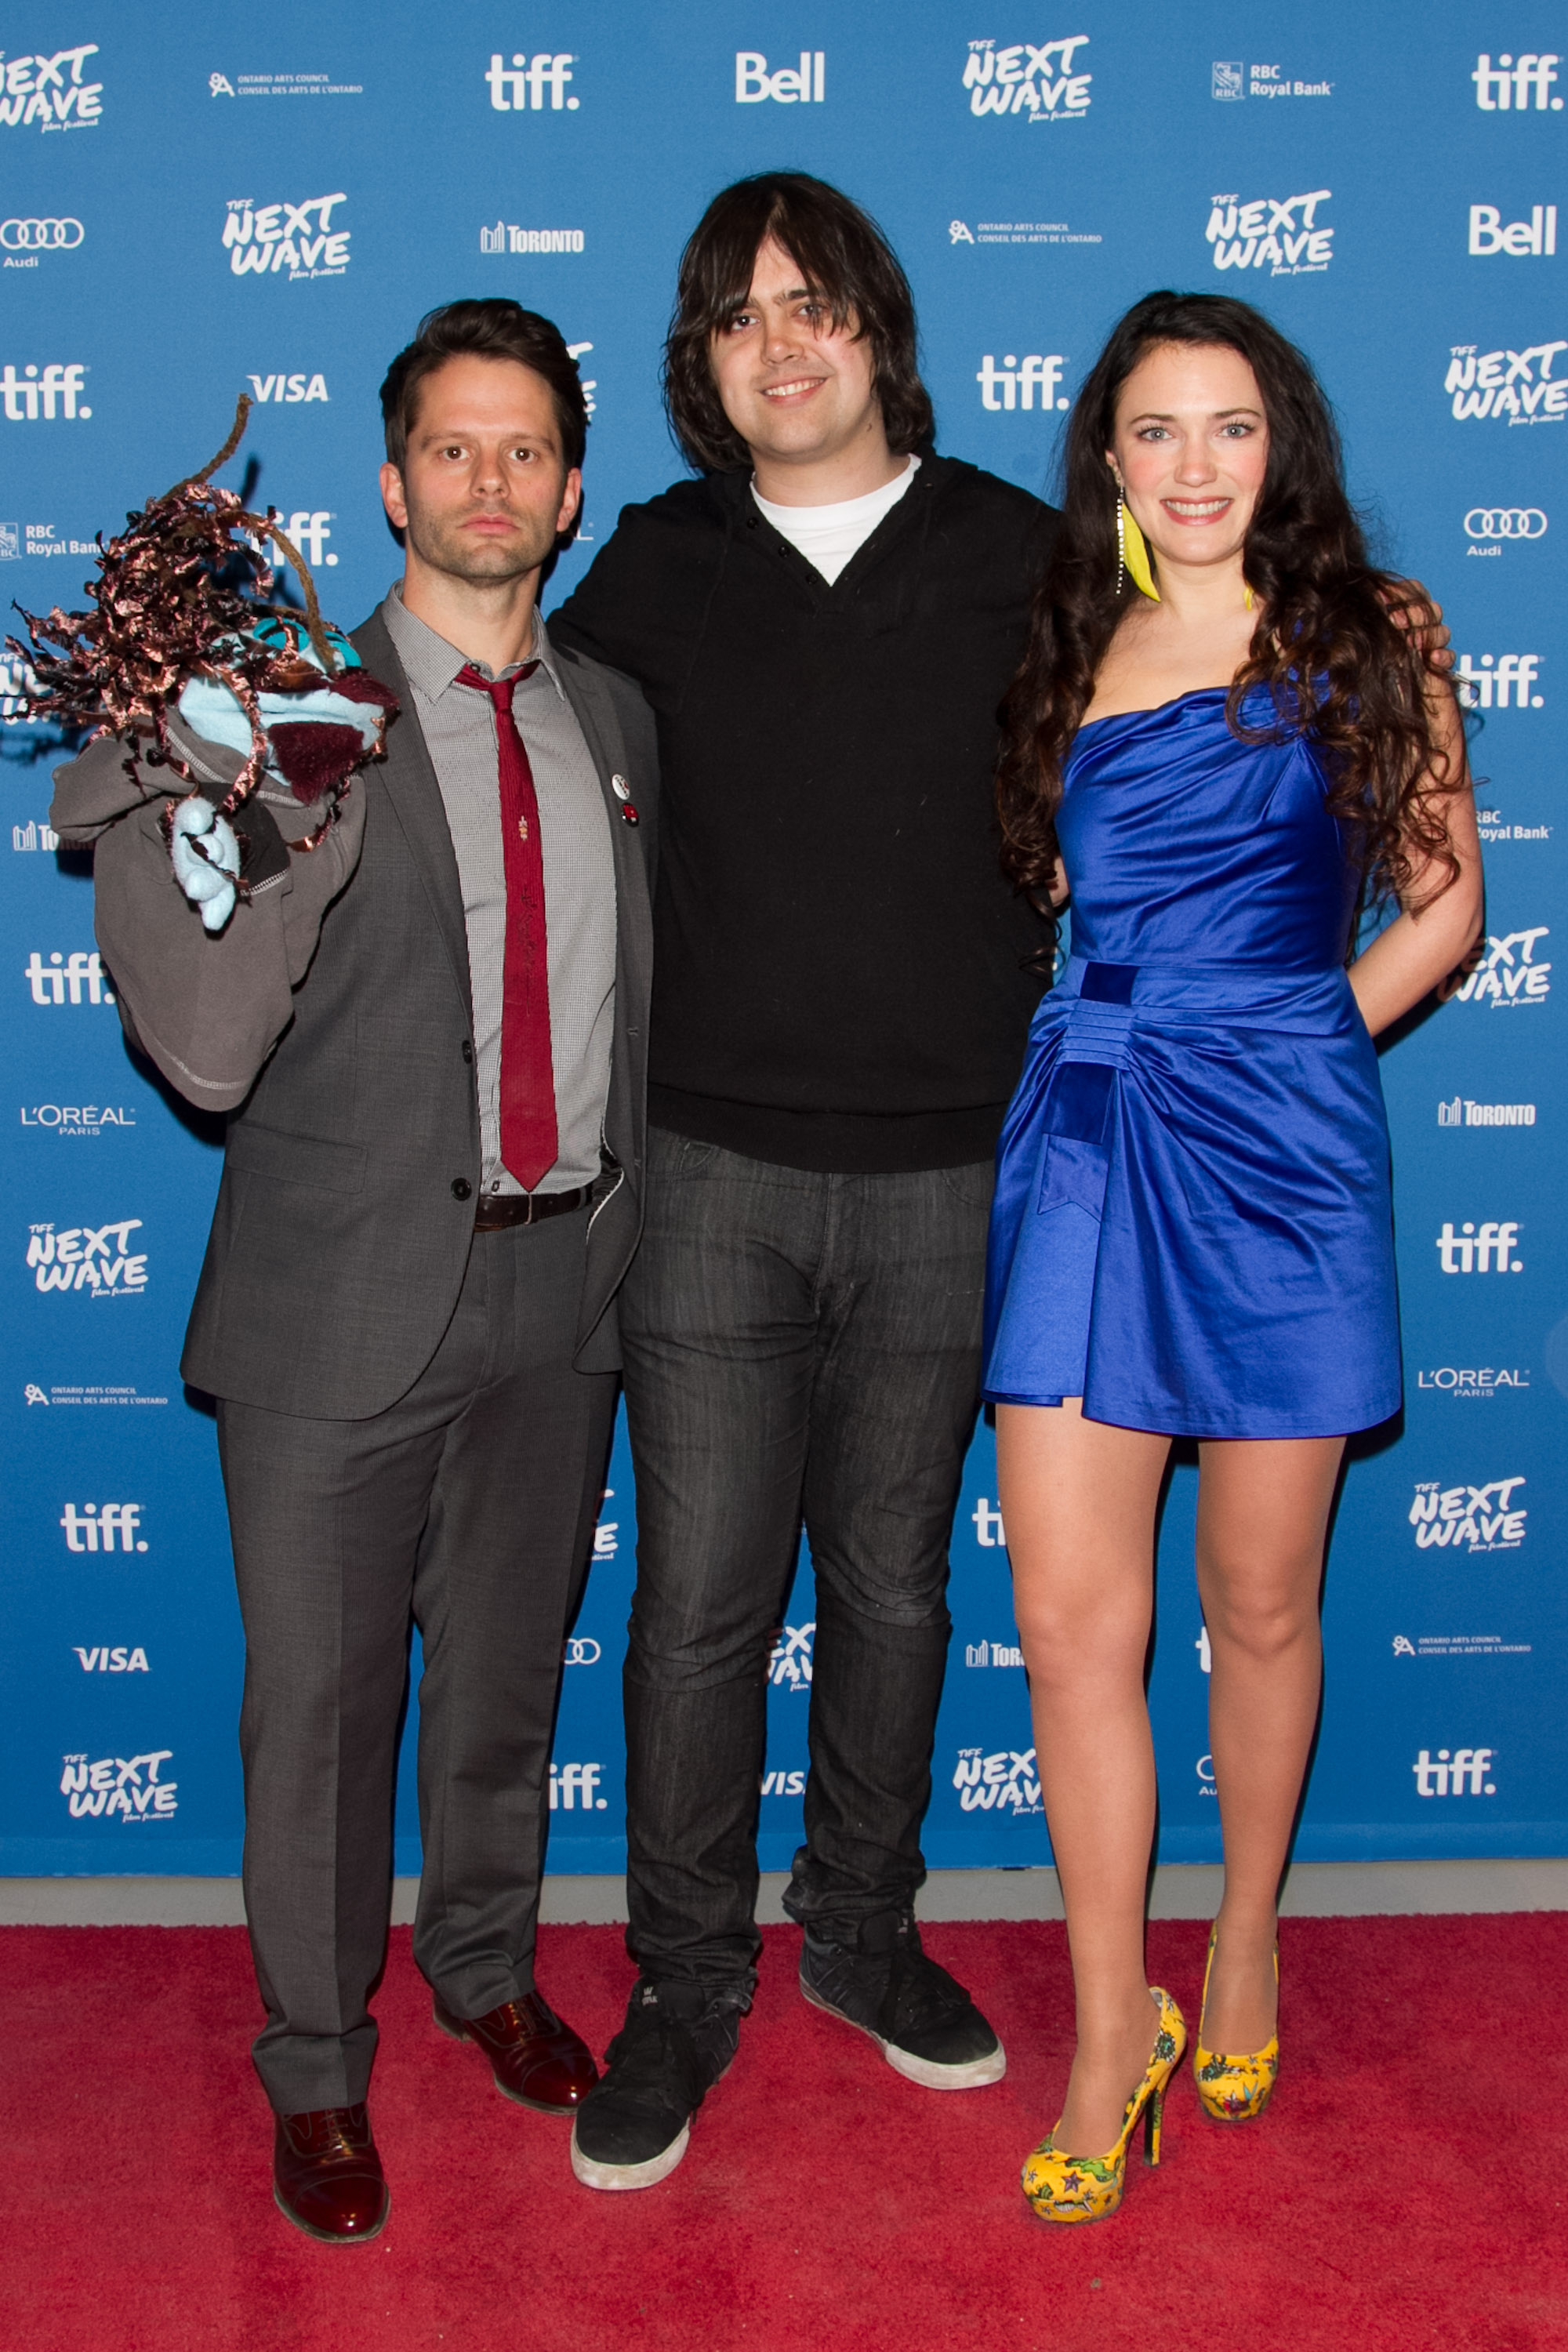 Tim Doiron (Actor/Writer) with Editor Luke Higginson and April Mullen (Director/Actor) at the North American Premiere of Dead Before Dawn 3D.  TIFF Next Wave Film Festival.  Photo by: Sarjoun Faour, WireImage/Getty for TIFF